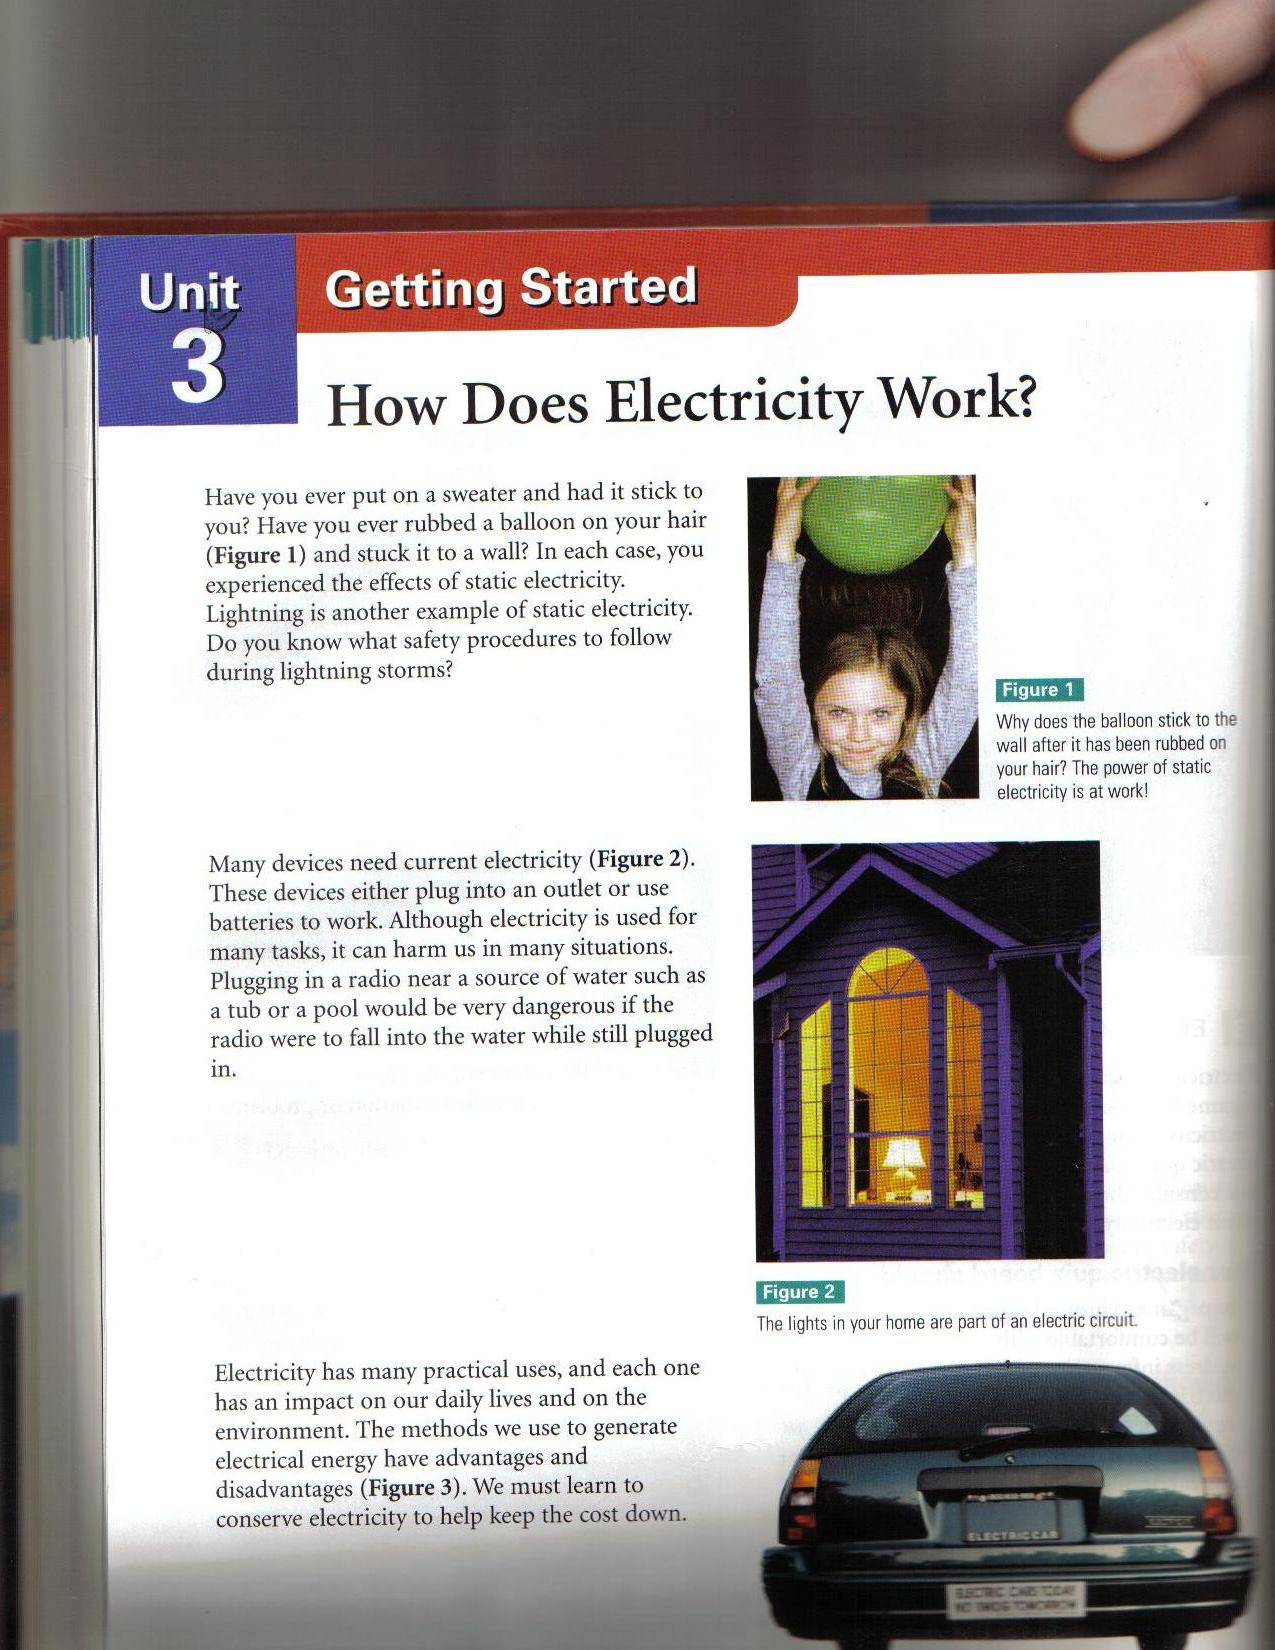 Toxic Science How Does Electric Circuit Work 122 123 126 127 What Did You Already Know Note Building A Model For Charge